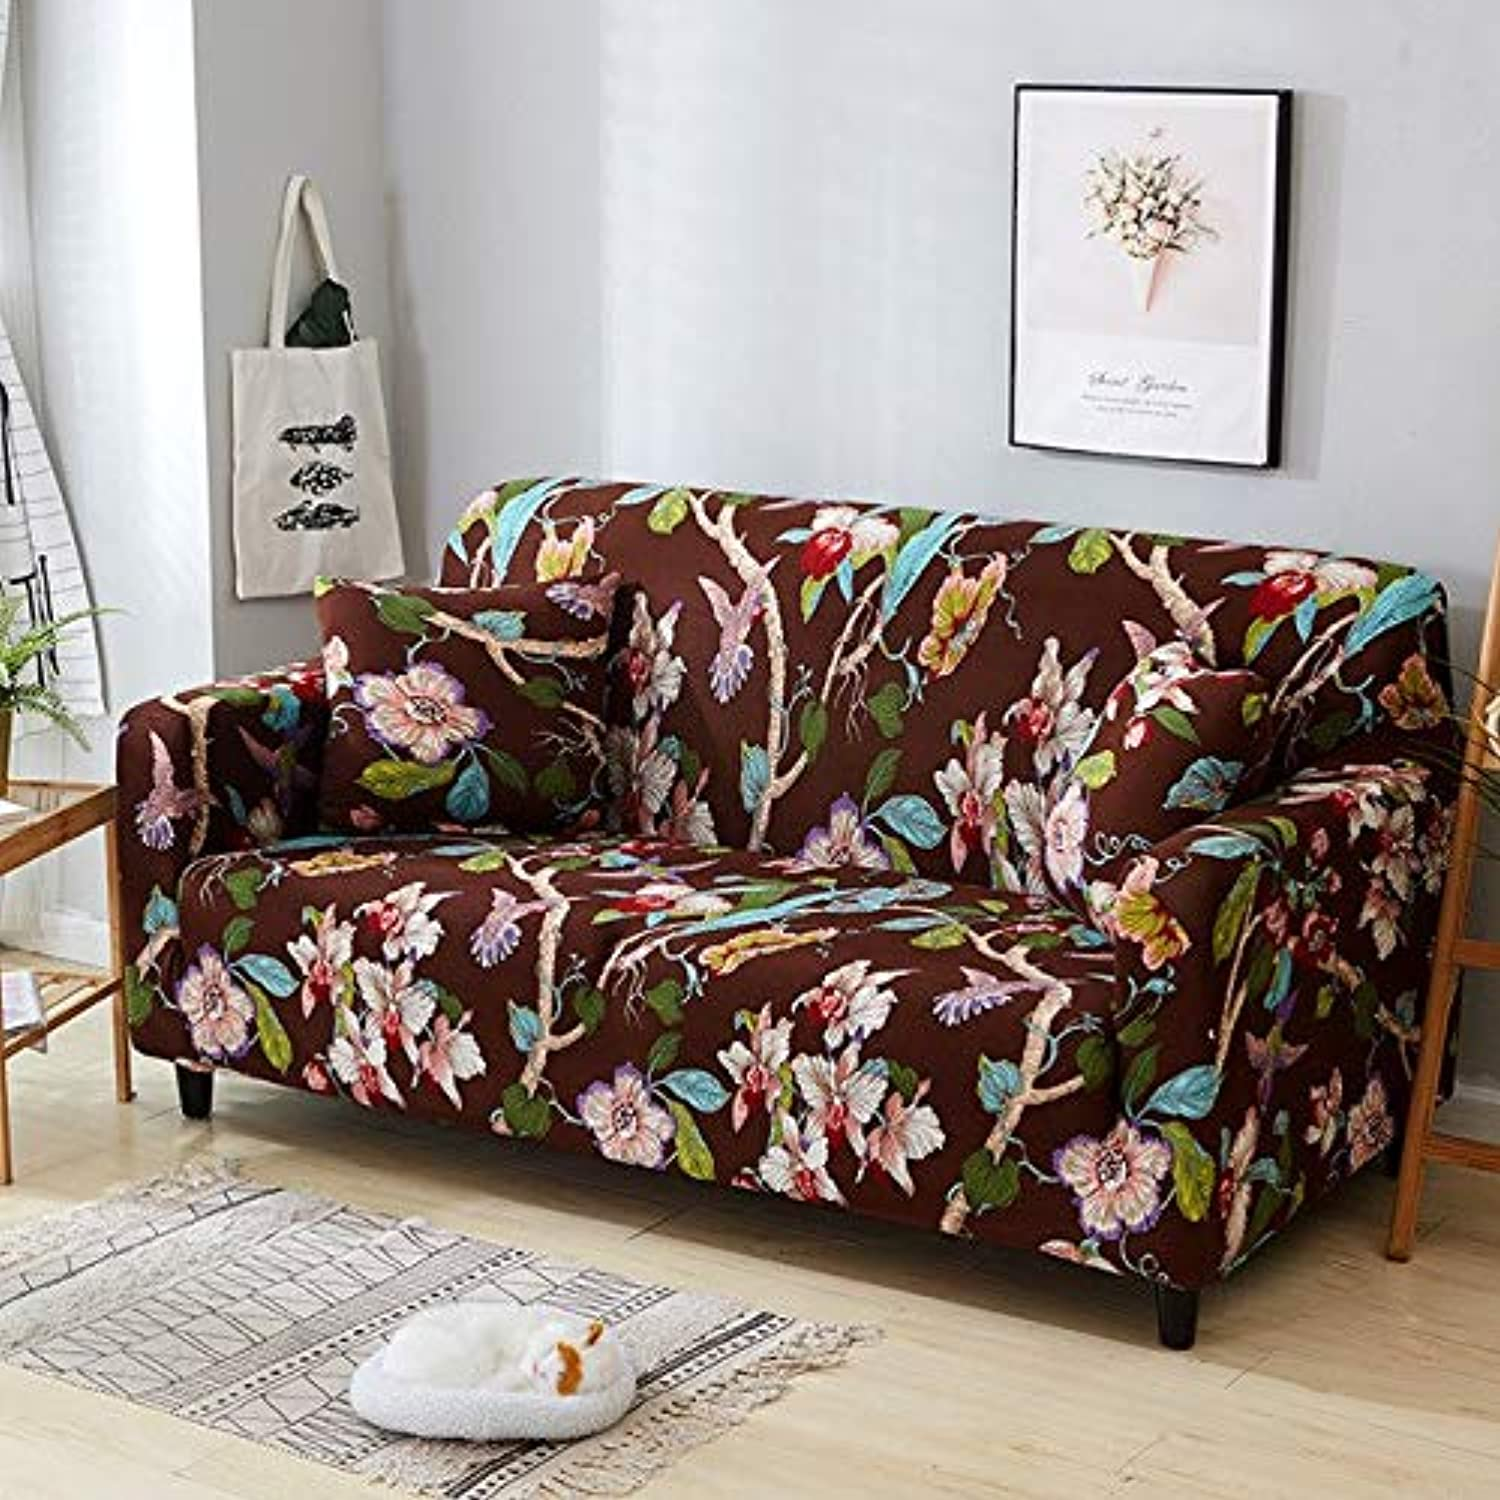 Elastic Sofa Tight Wrap All-Inclusive Slip-Resistant Sofa Cover seat Couch Covers Sofa Towel Single Two Three Four-Seater   5815, 2 Seater 140-185cm